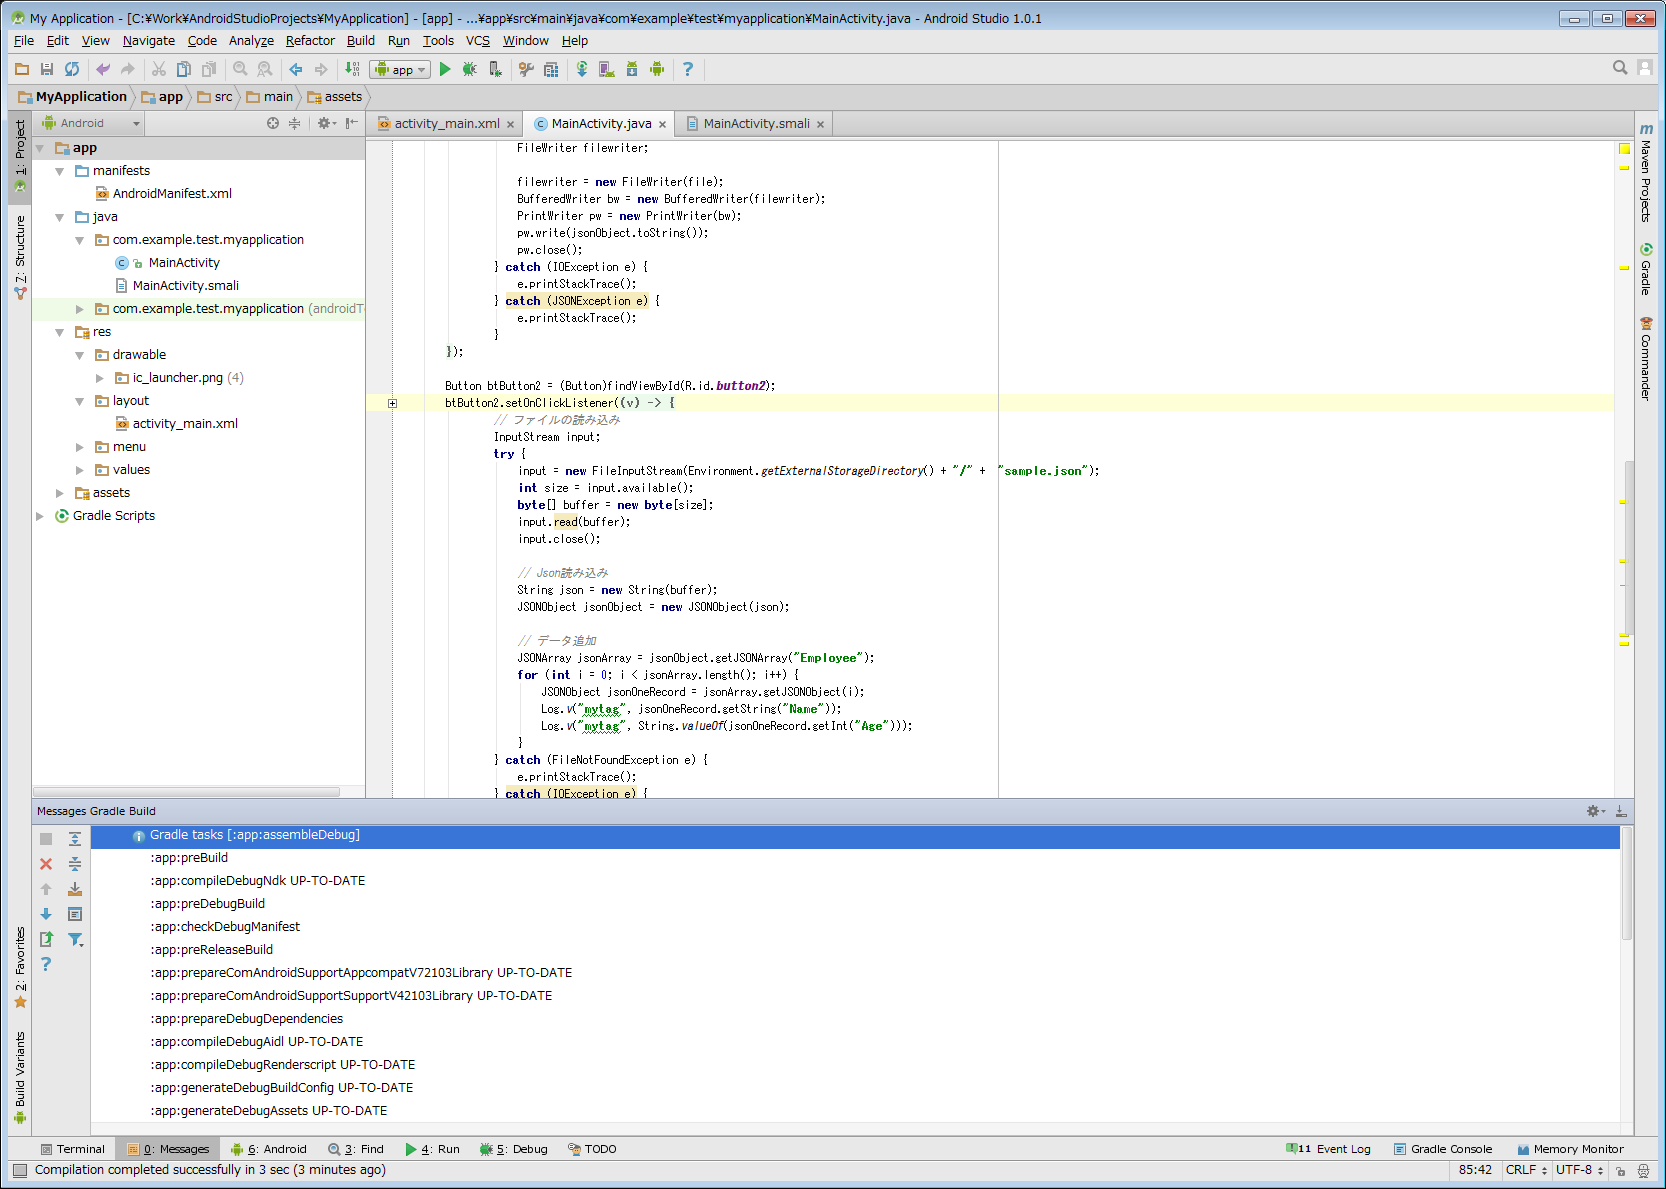 androidstudio_20150131027.png